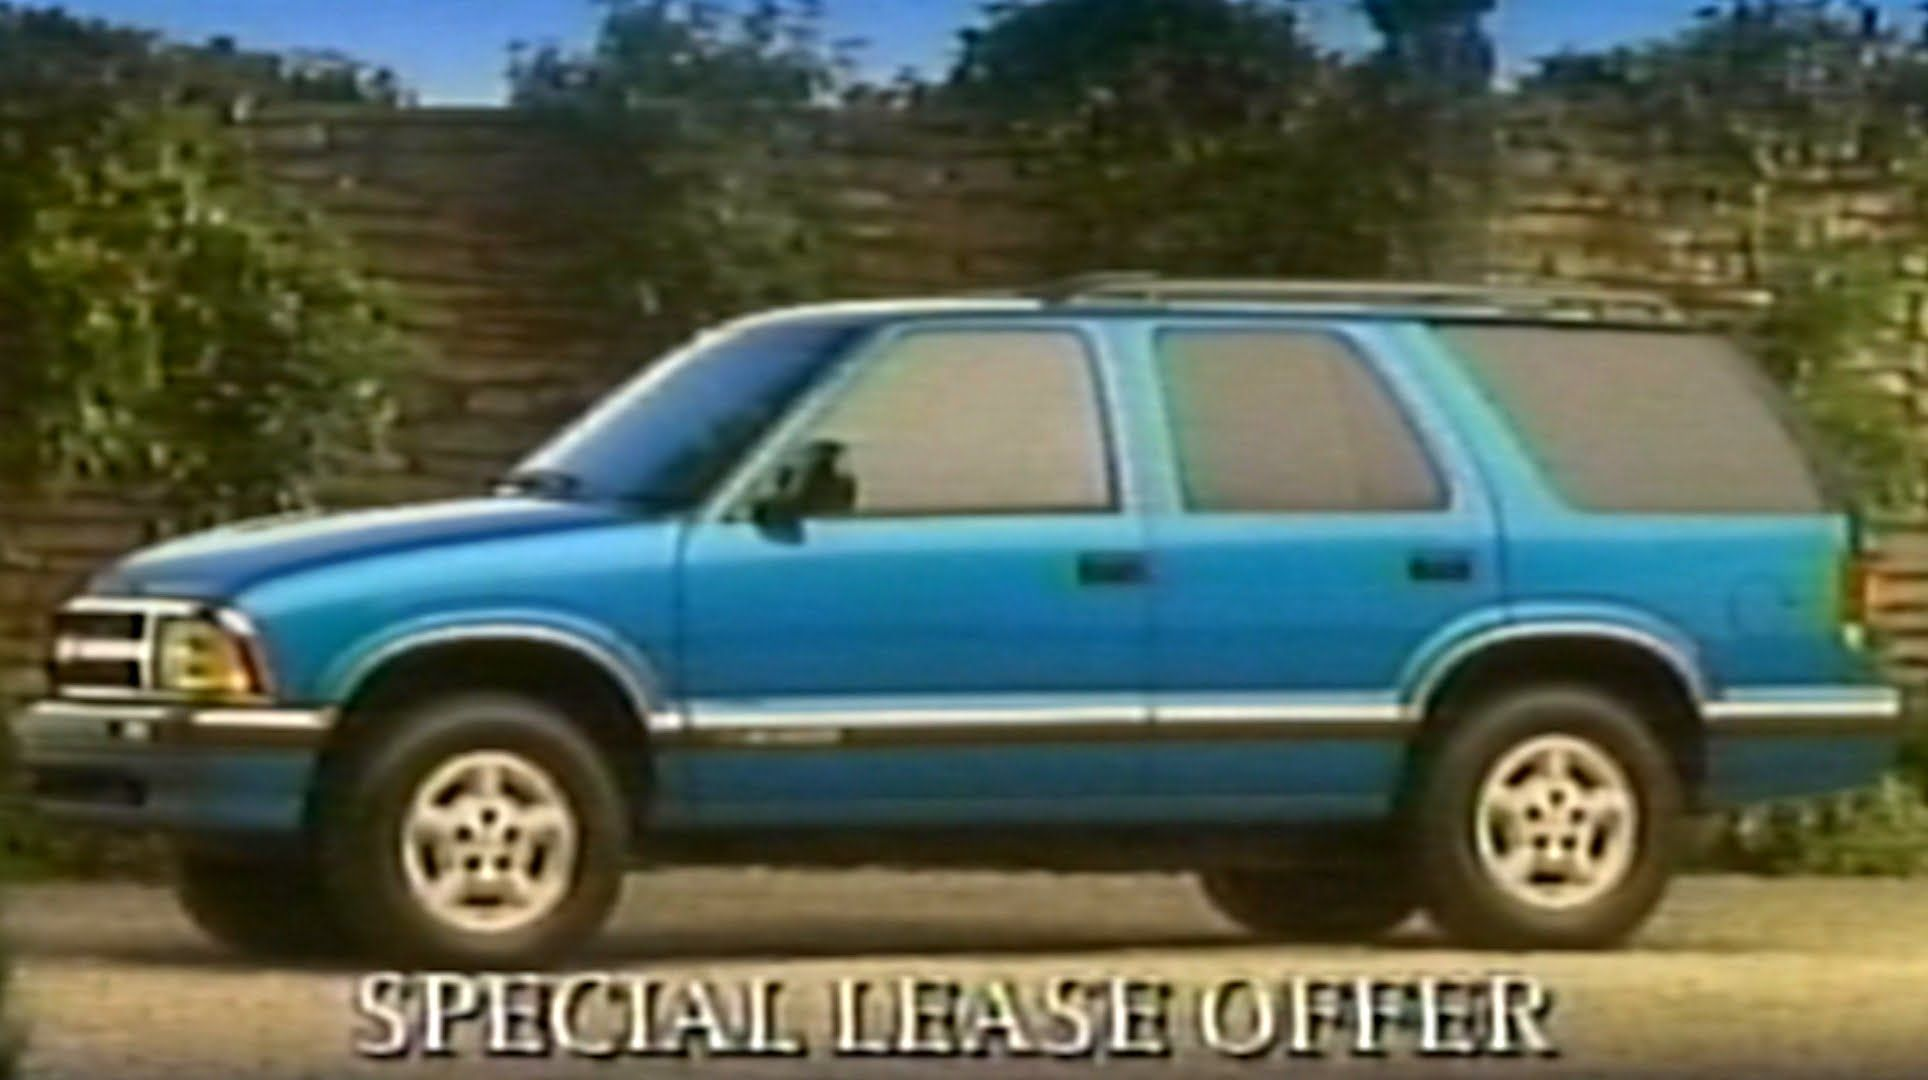 1994 Commercial Chevy Blazer Lease Offer W Janine Turner Chevy Janine Turner Youtube